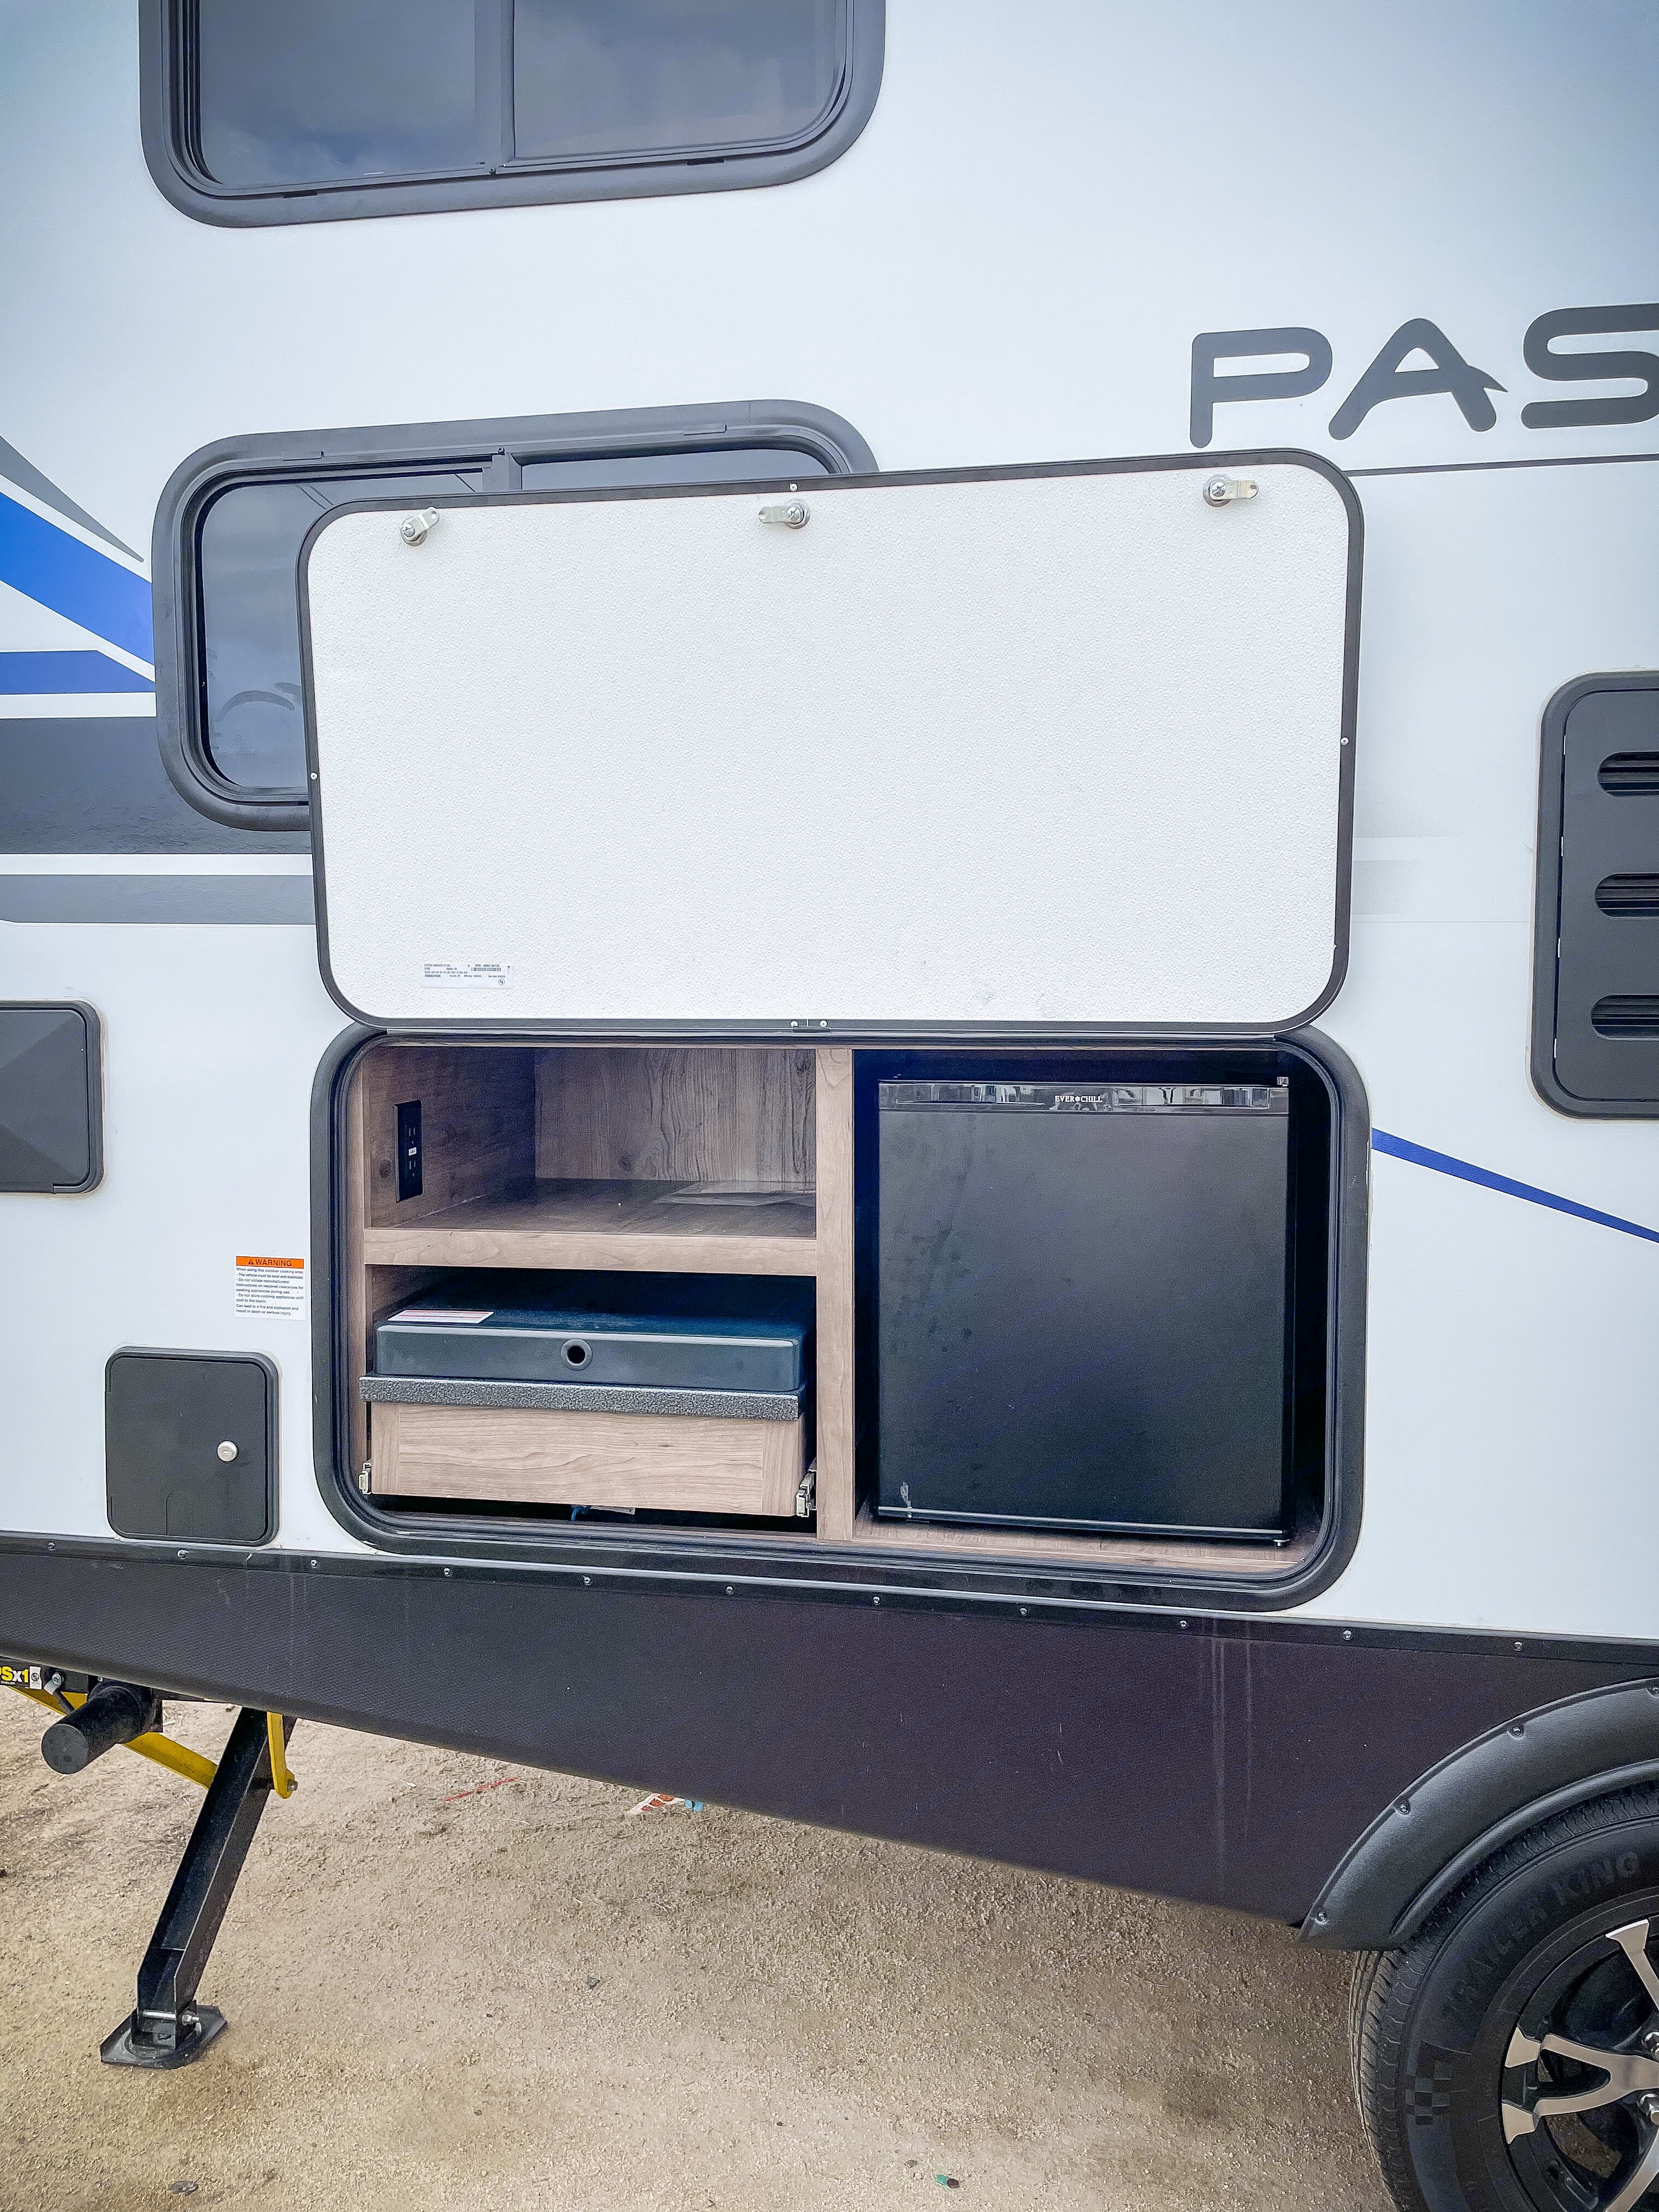 Outdoor fridge and gas grill keeps the party going outside. . Keystone Passport 2021